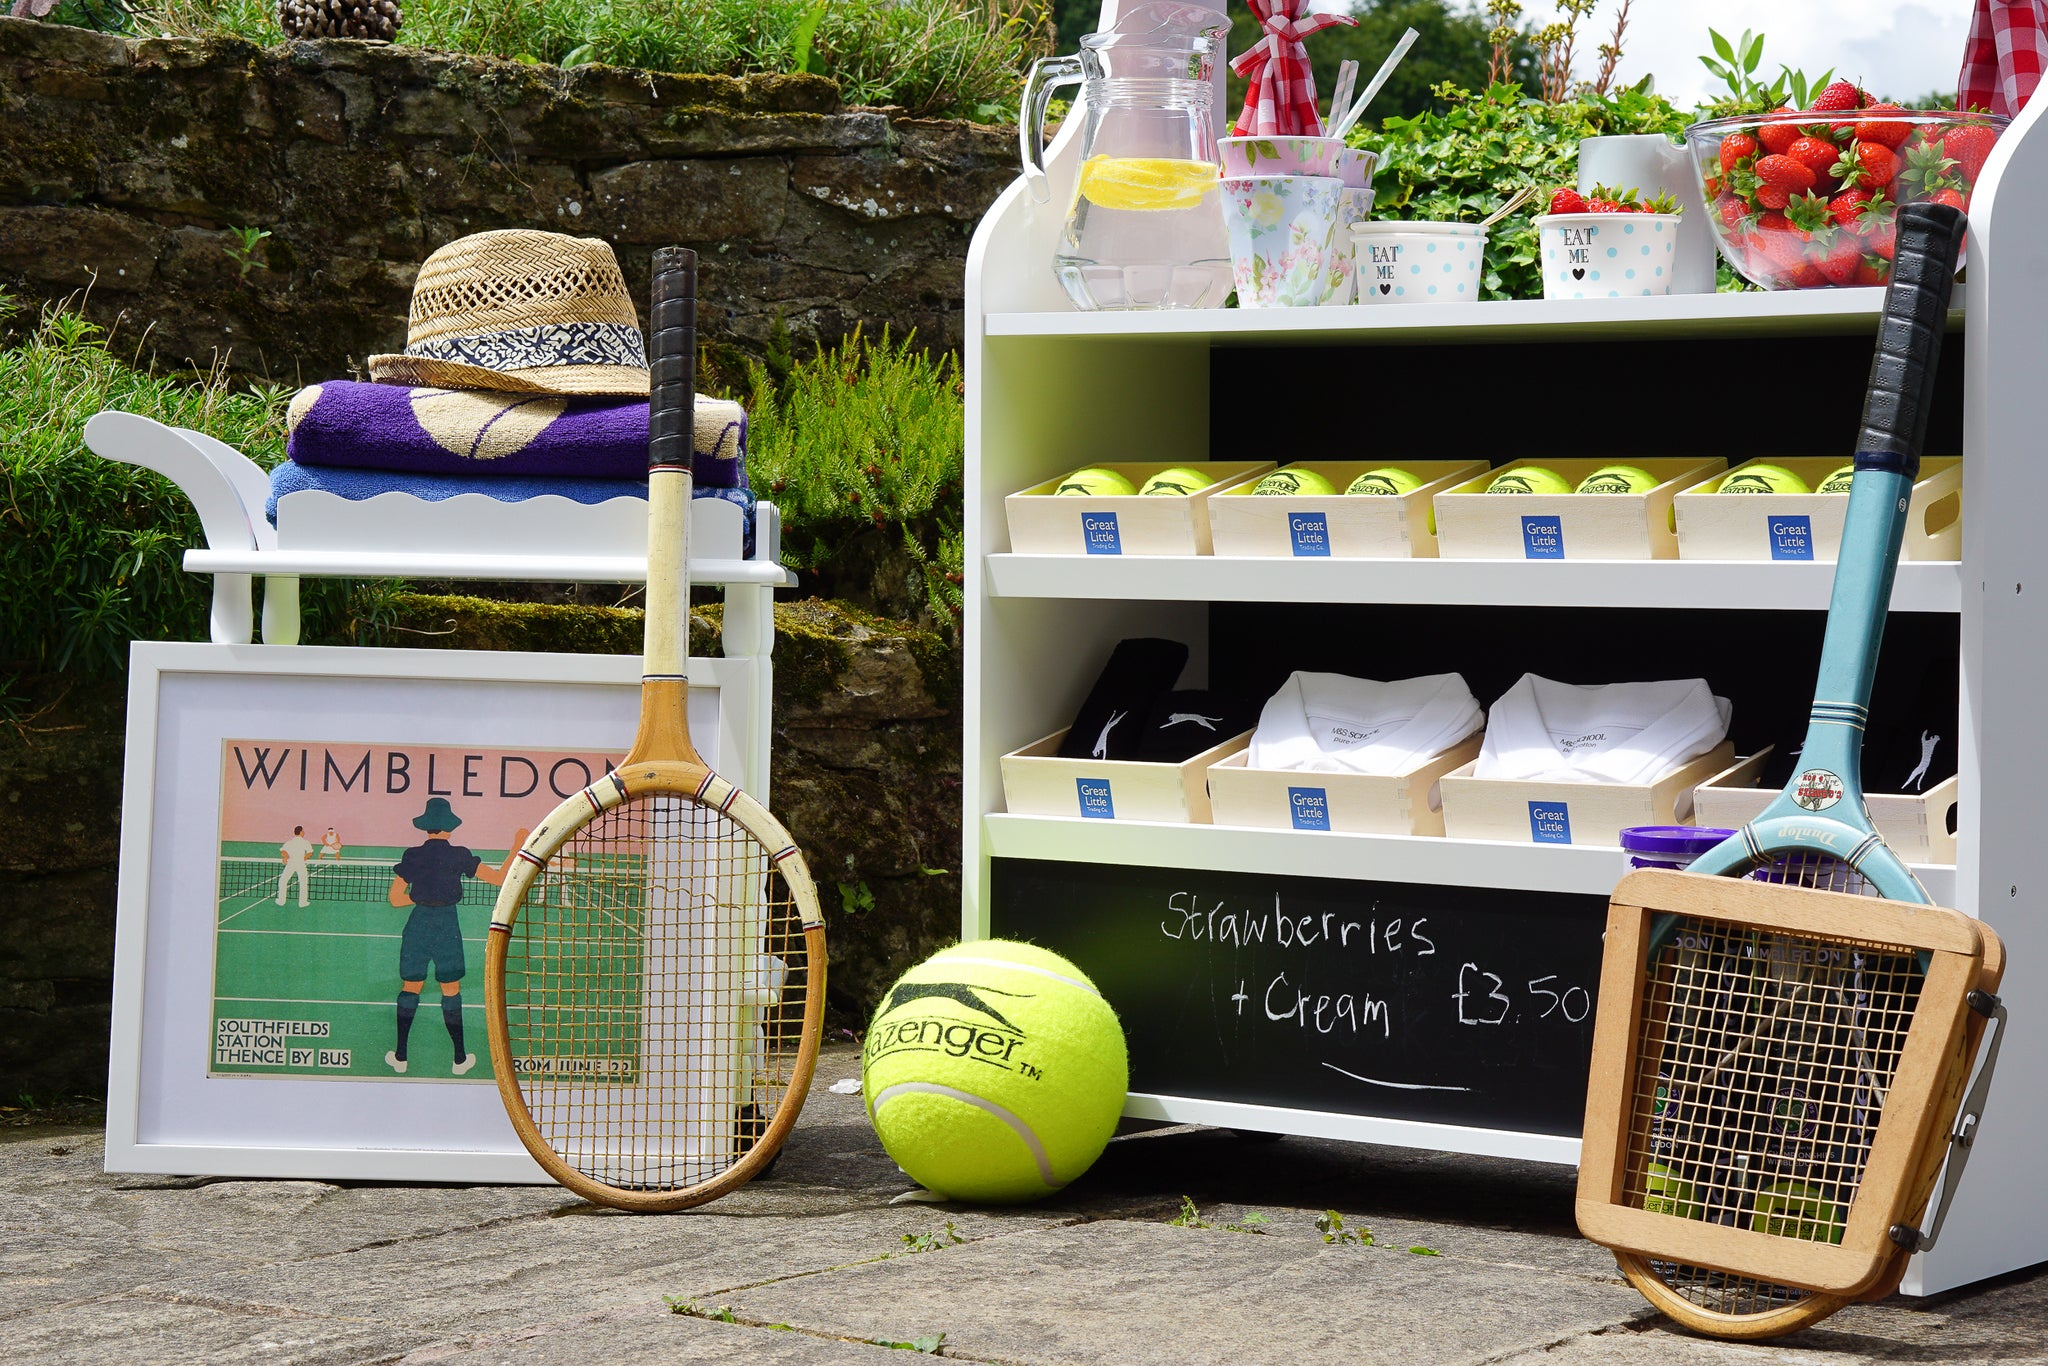 The play shop gets a Wimbledon-themed makeover